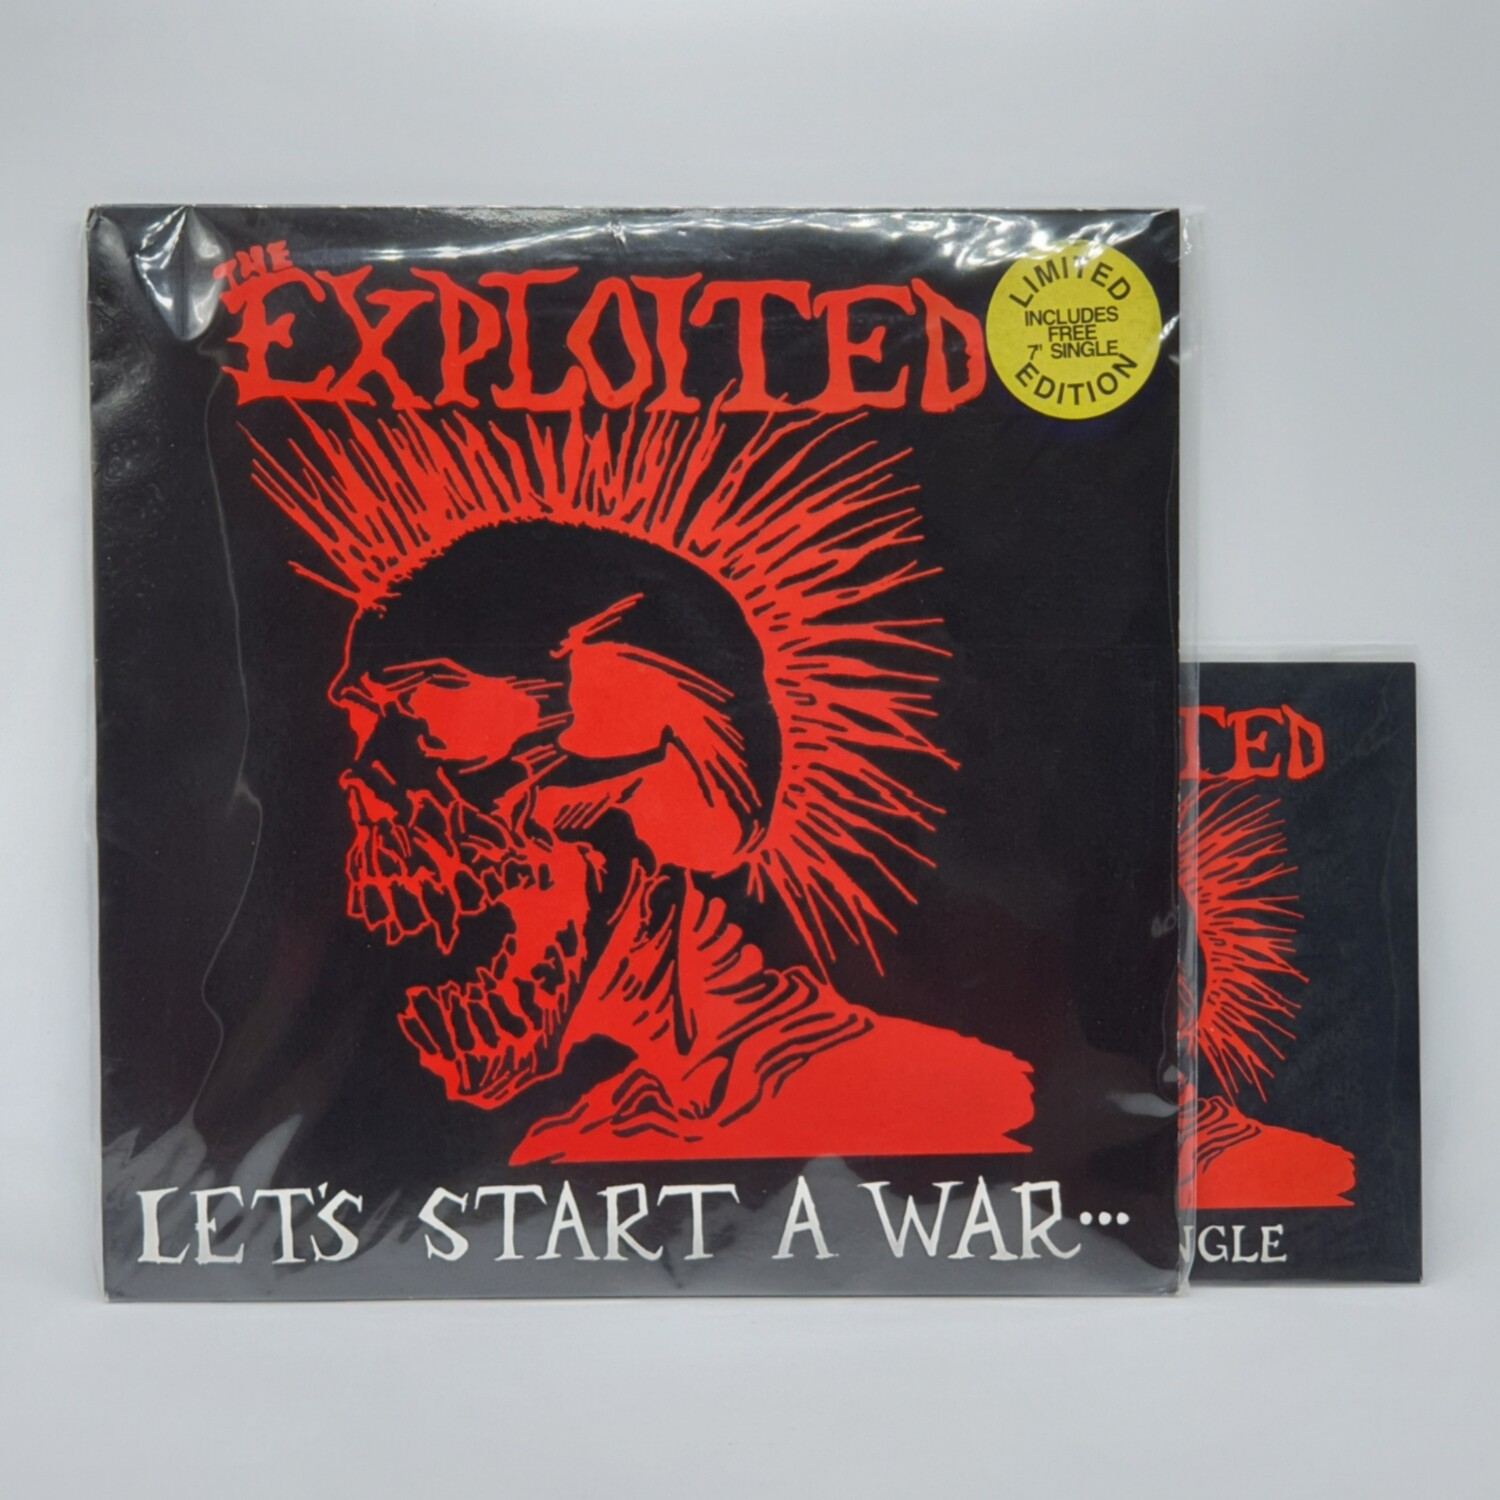 THE EXPLOITED -LETS STARTA WAR...- LP + 7 INCH